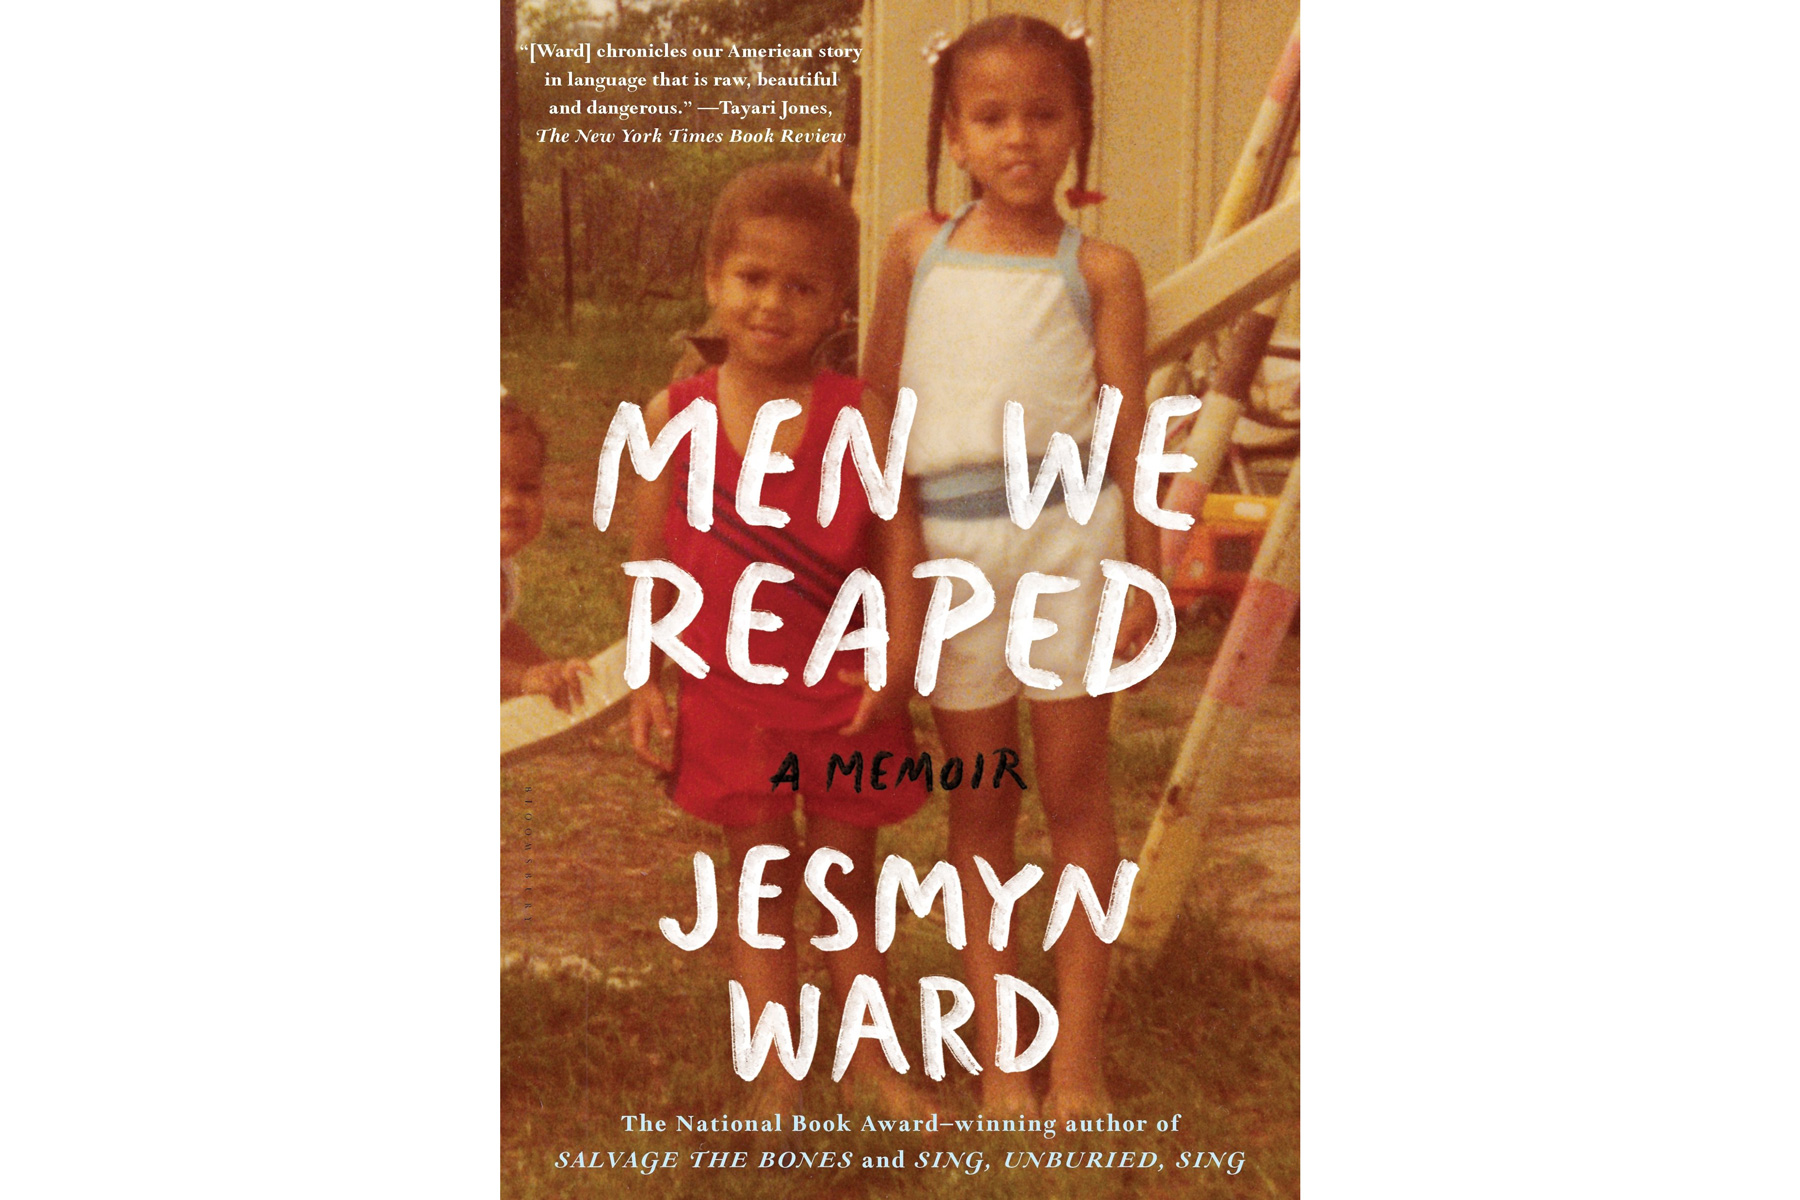 Men We Reaped, by Jesmyn Ward